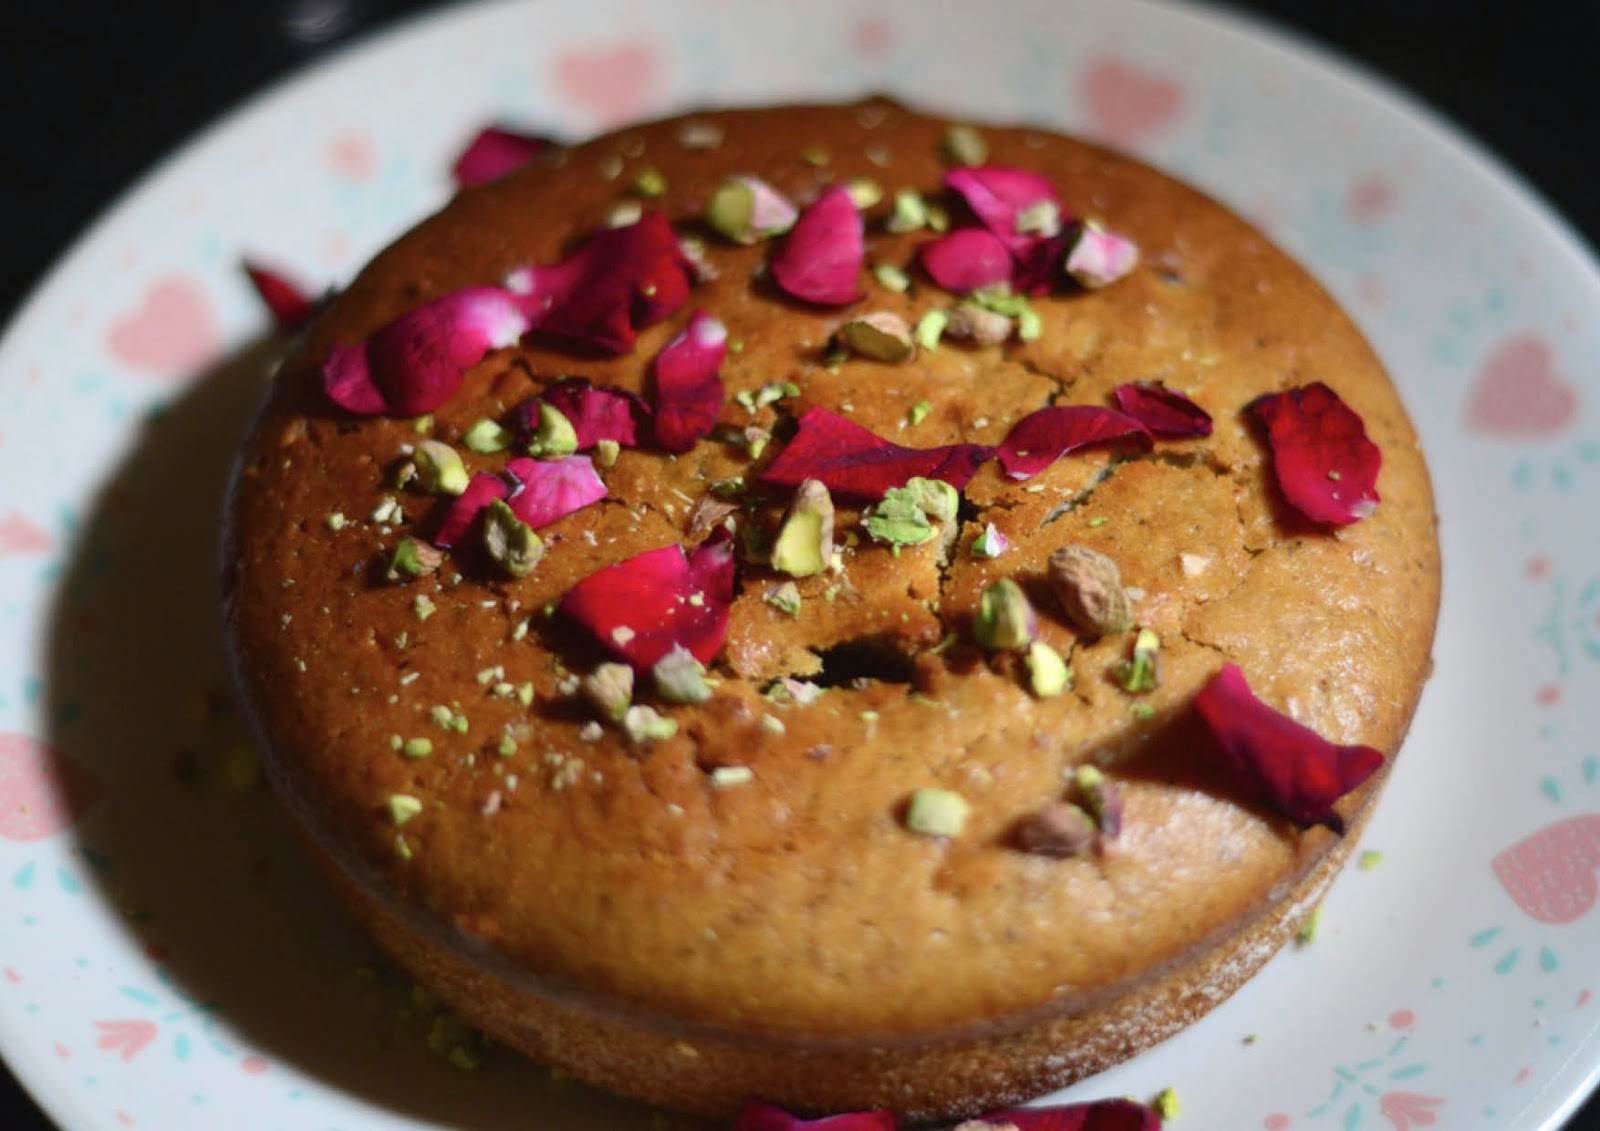 Gorgeous rose and thandai cake- for the gods